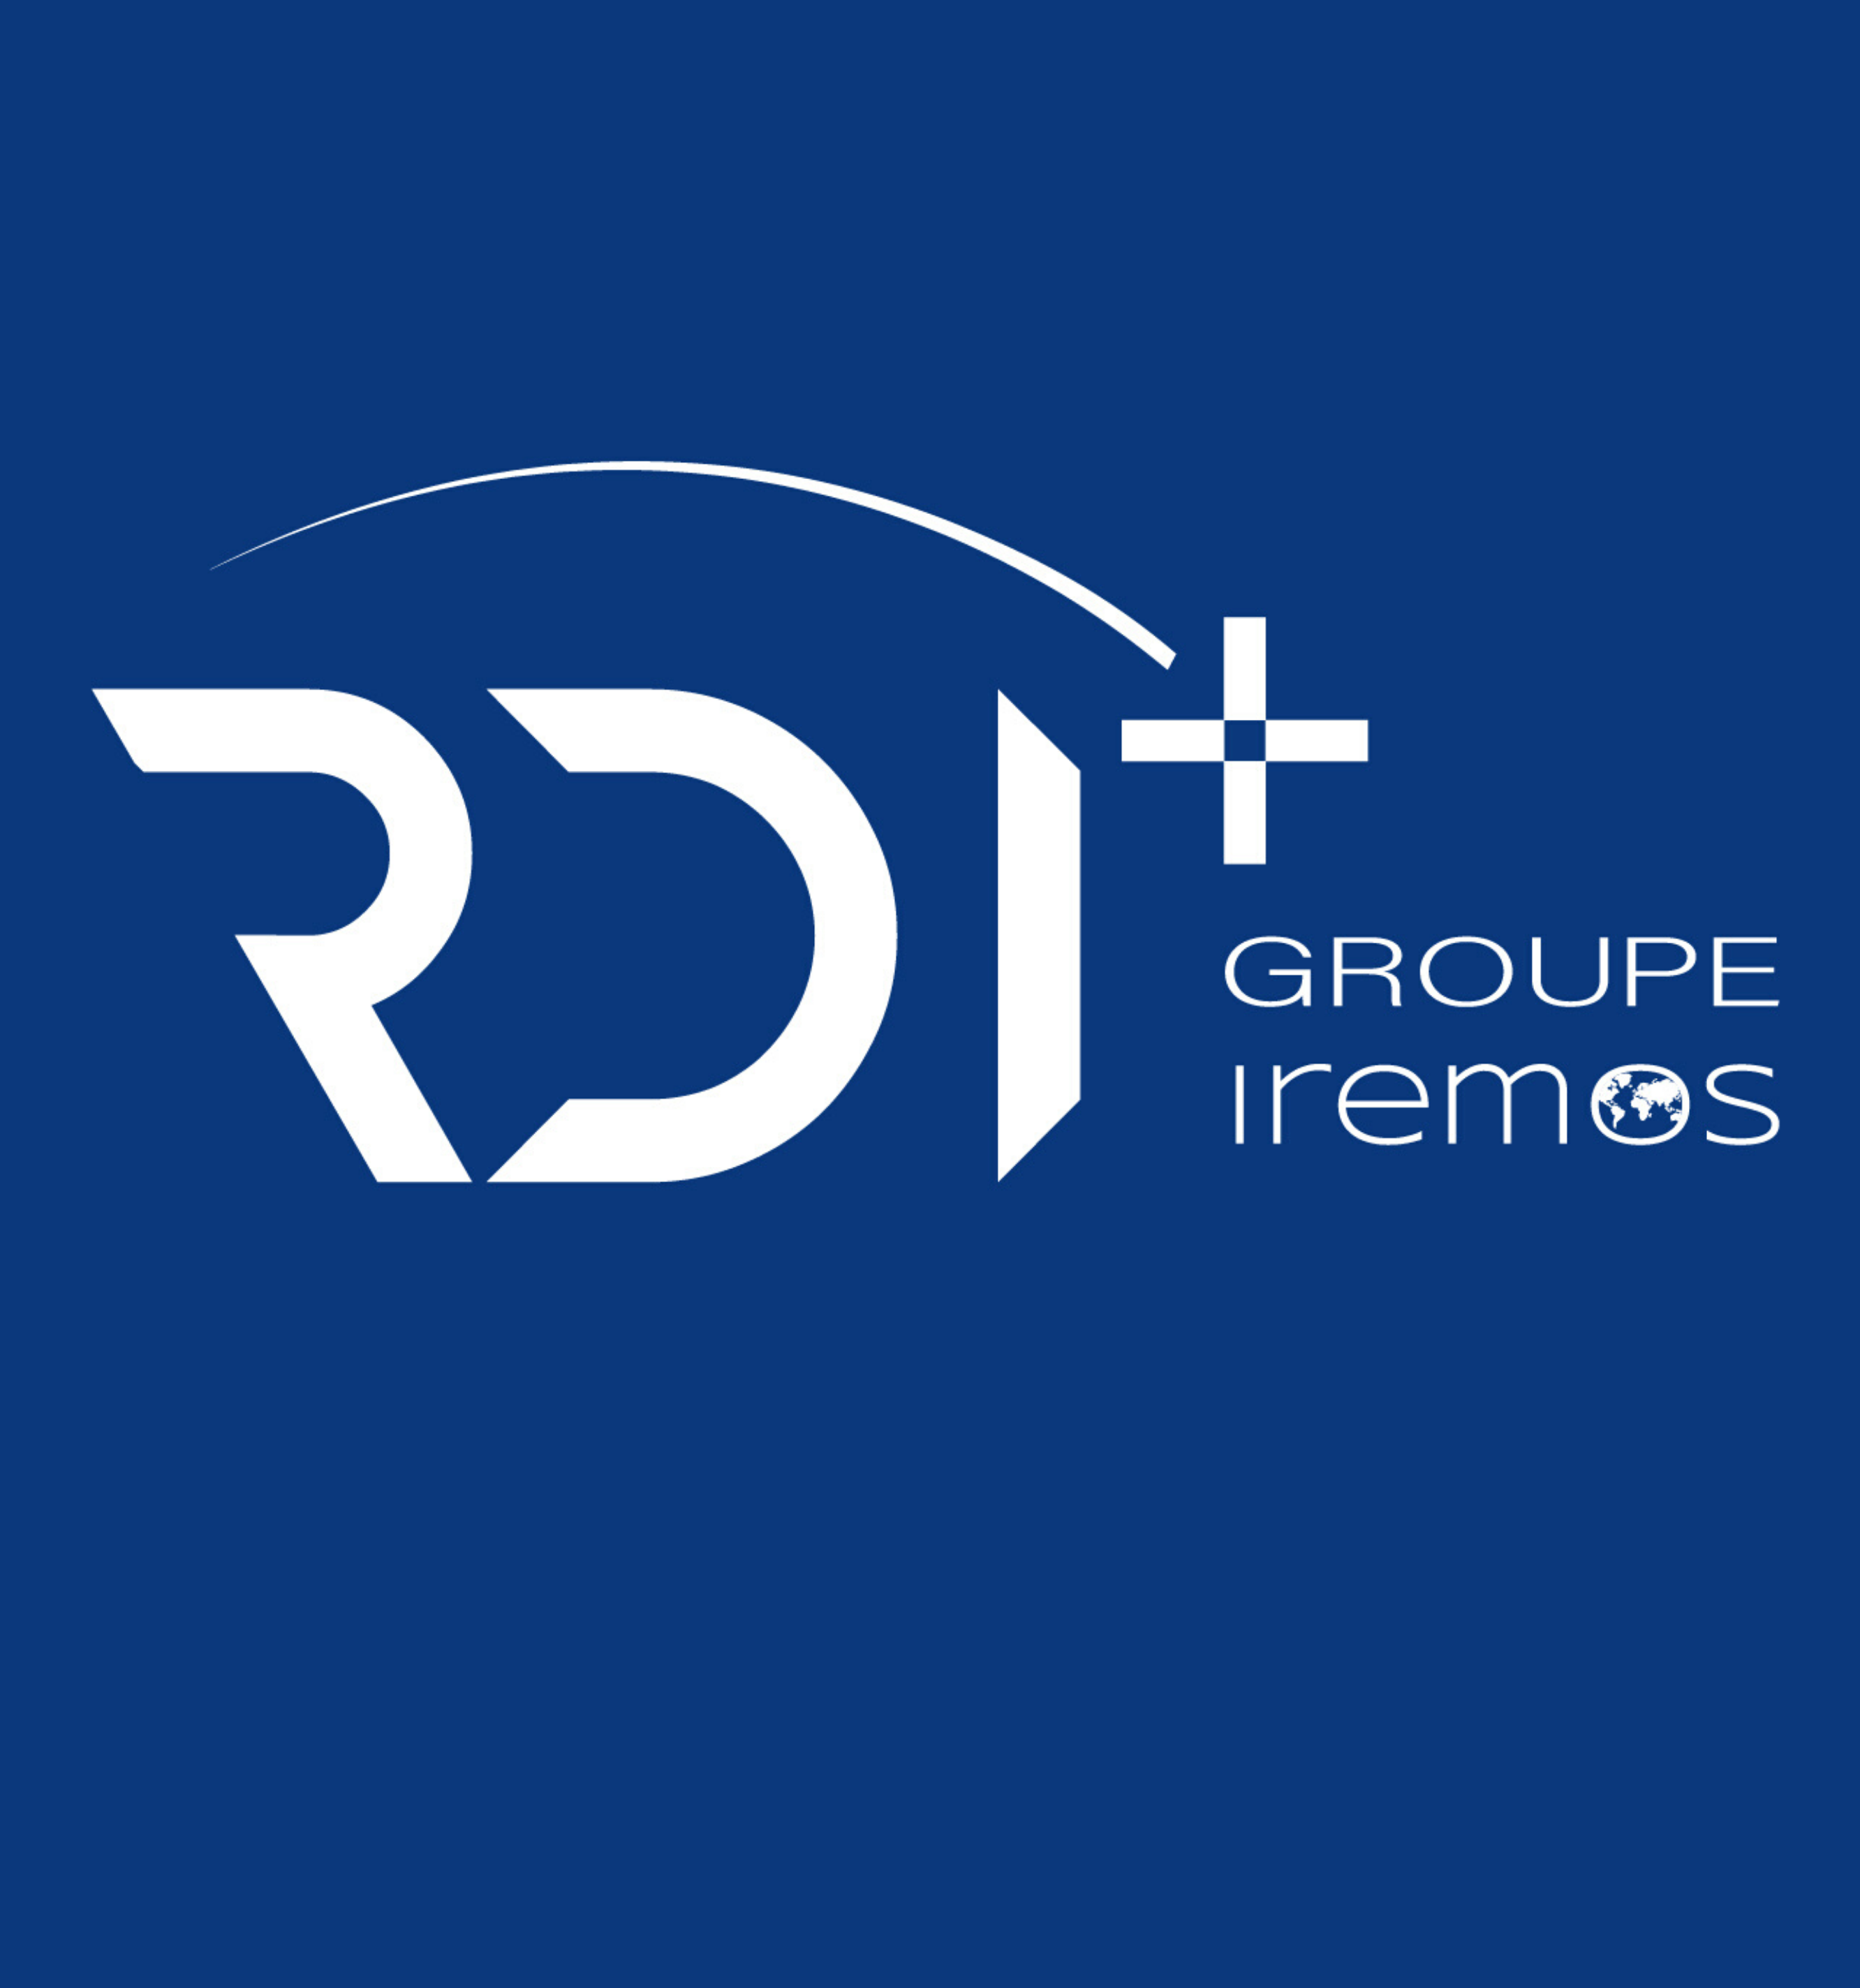 iremos-logiciel-thom-as-rdi+-direction-renseignement-securite-defense-drsd (1)